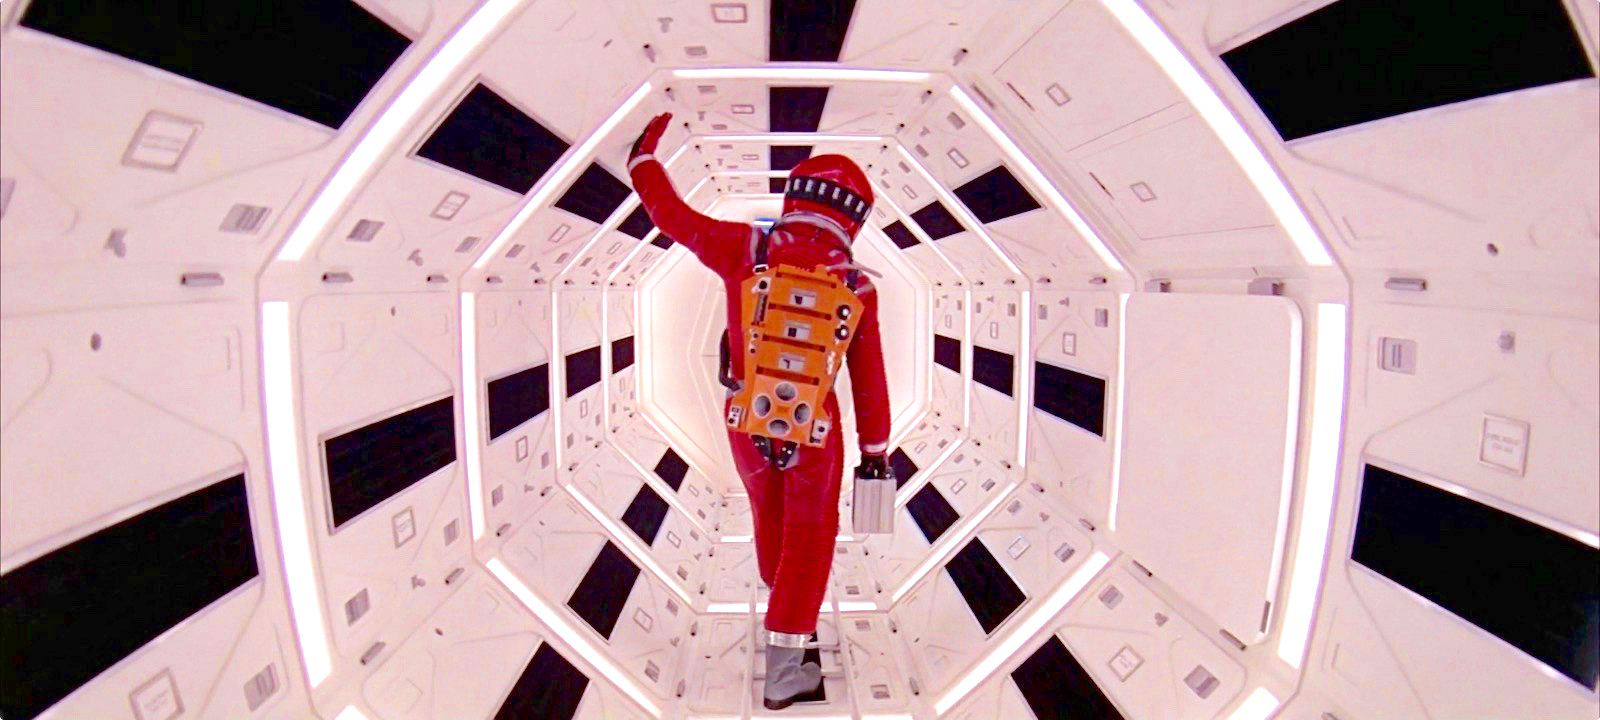 '2001: A Space Odyssey' Is the Most Overrated Film of All Time